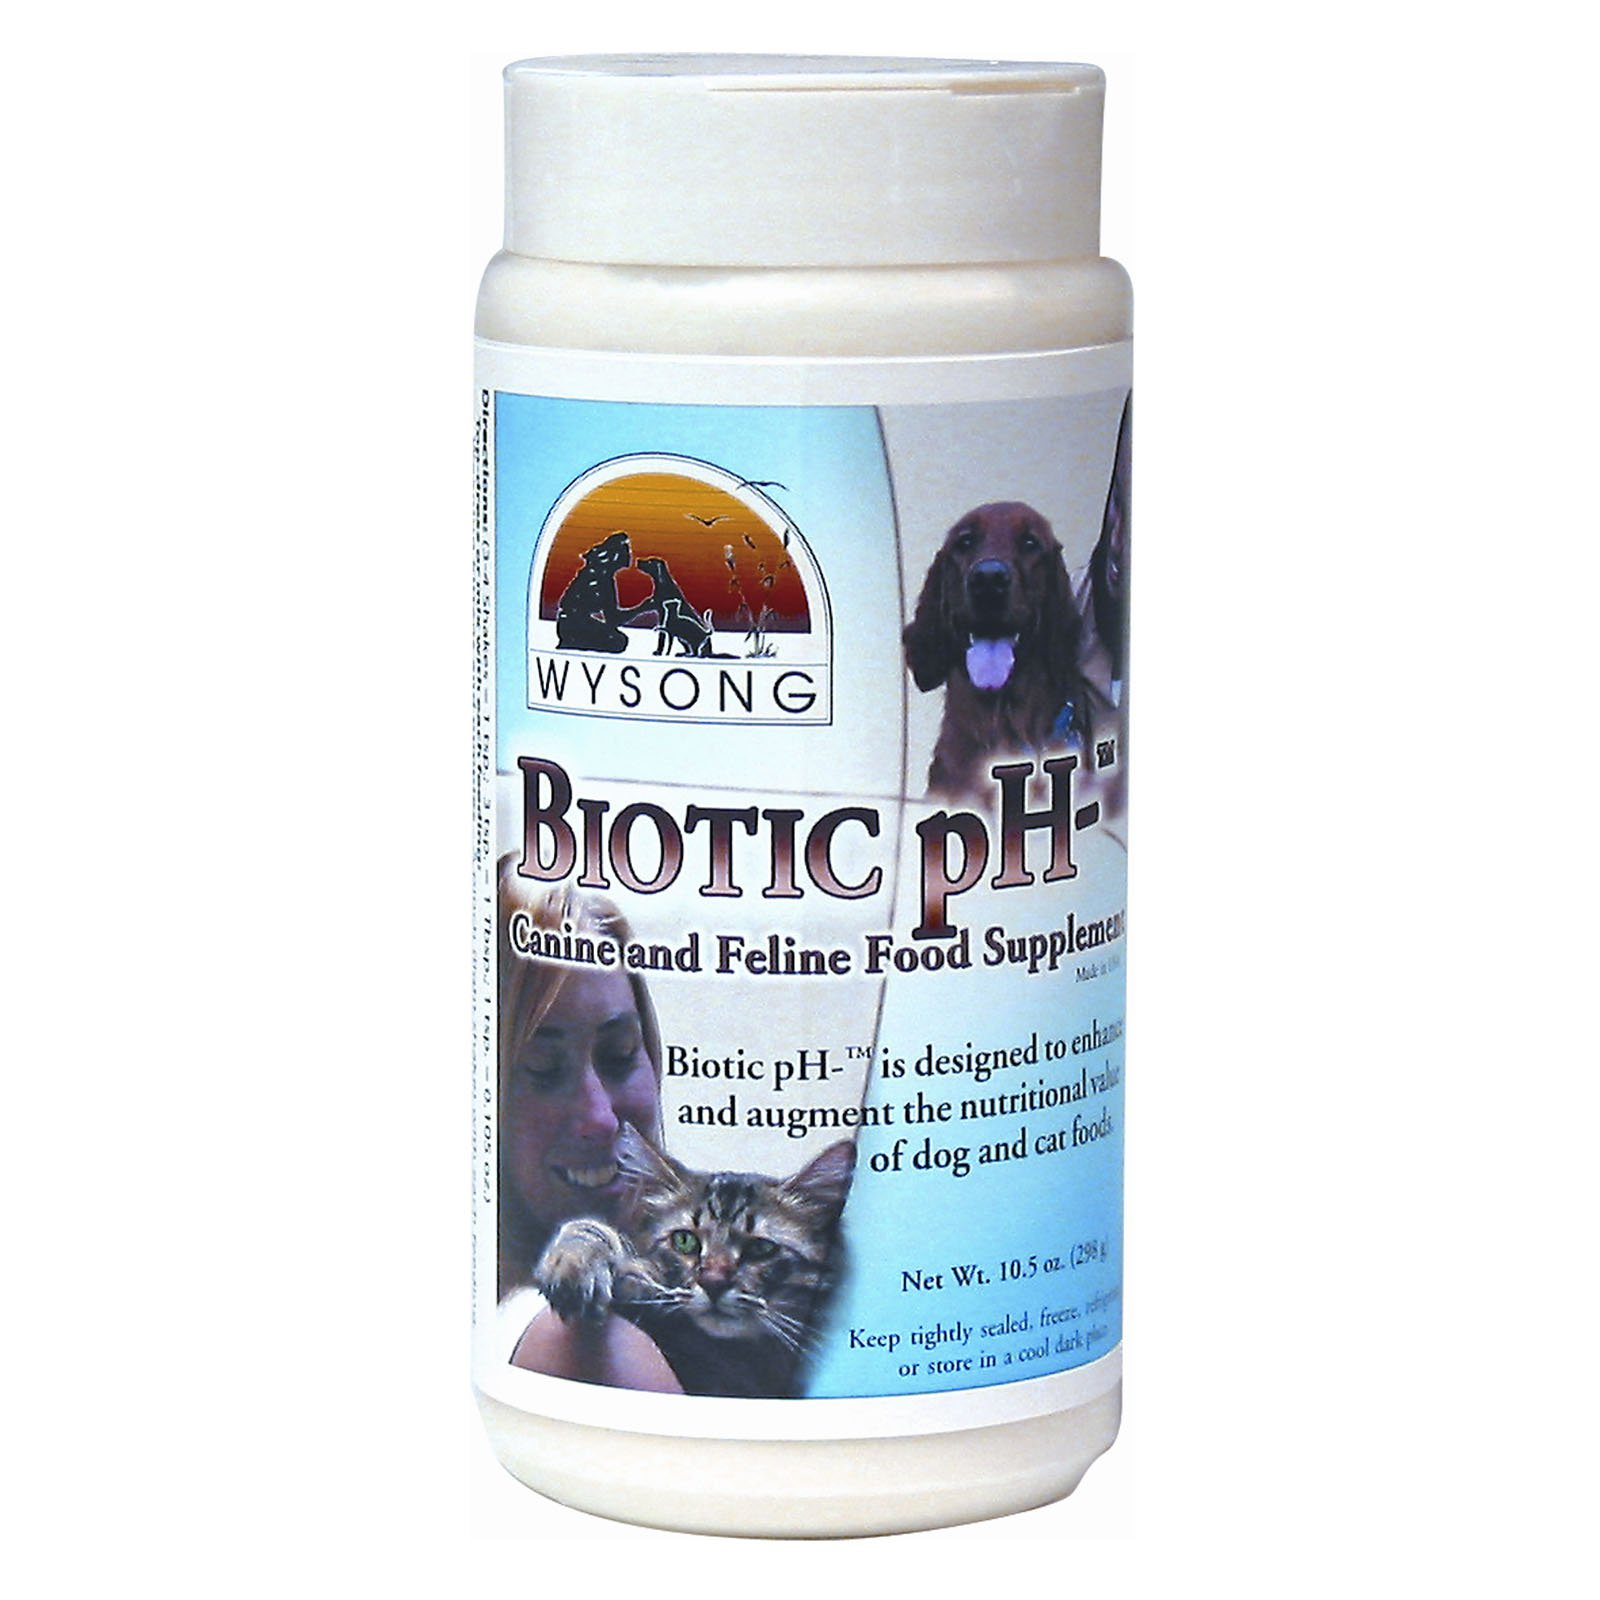 Wysong Biotic pH- Dog Food Supplements